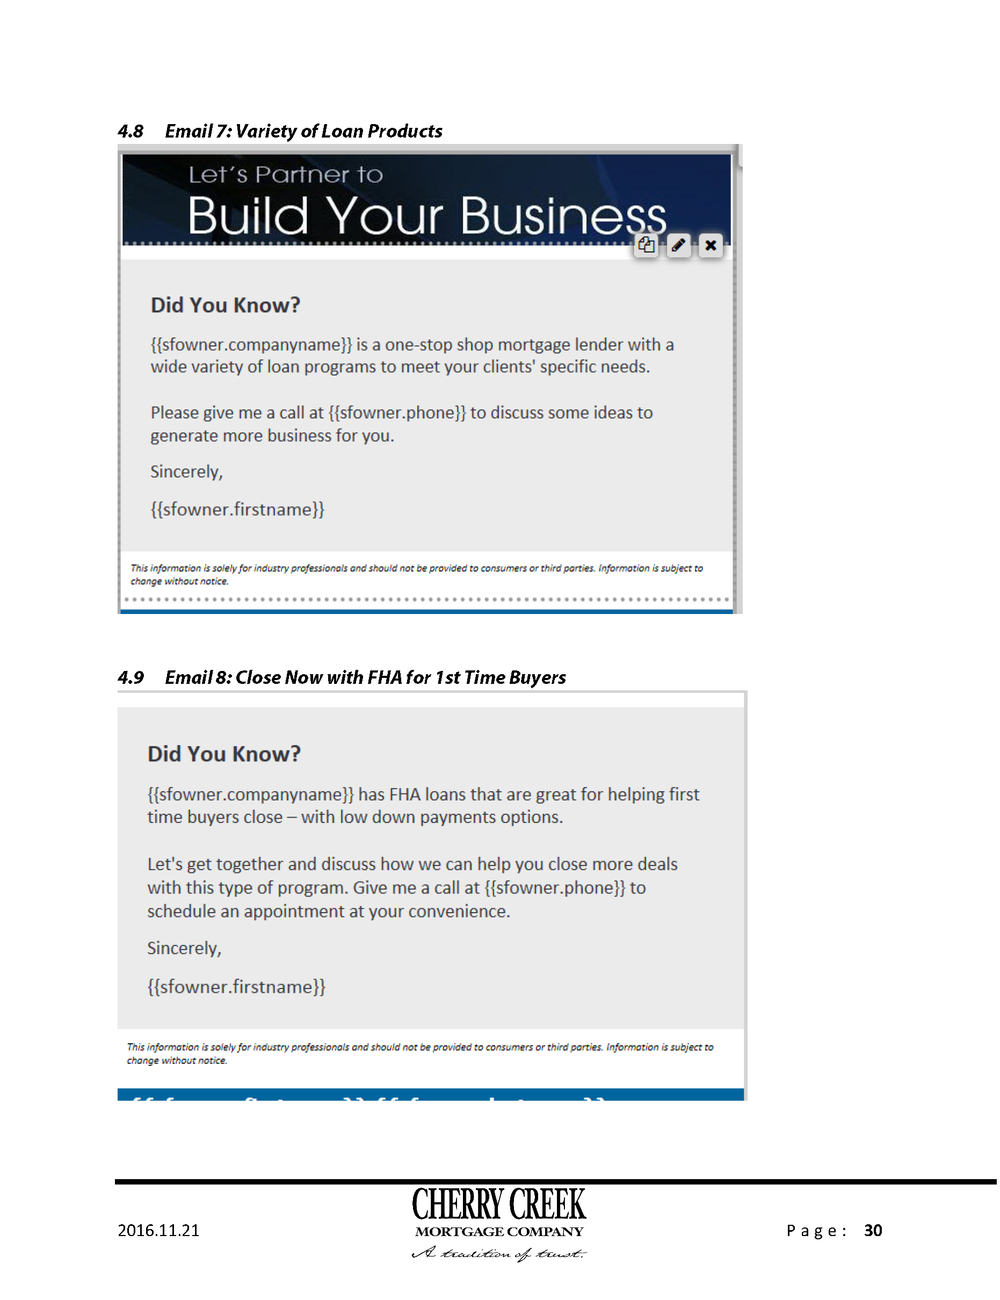 Jungo Email Drip Campaigns-Partner Campaigns_936fvYX_Page_30.png